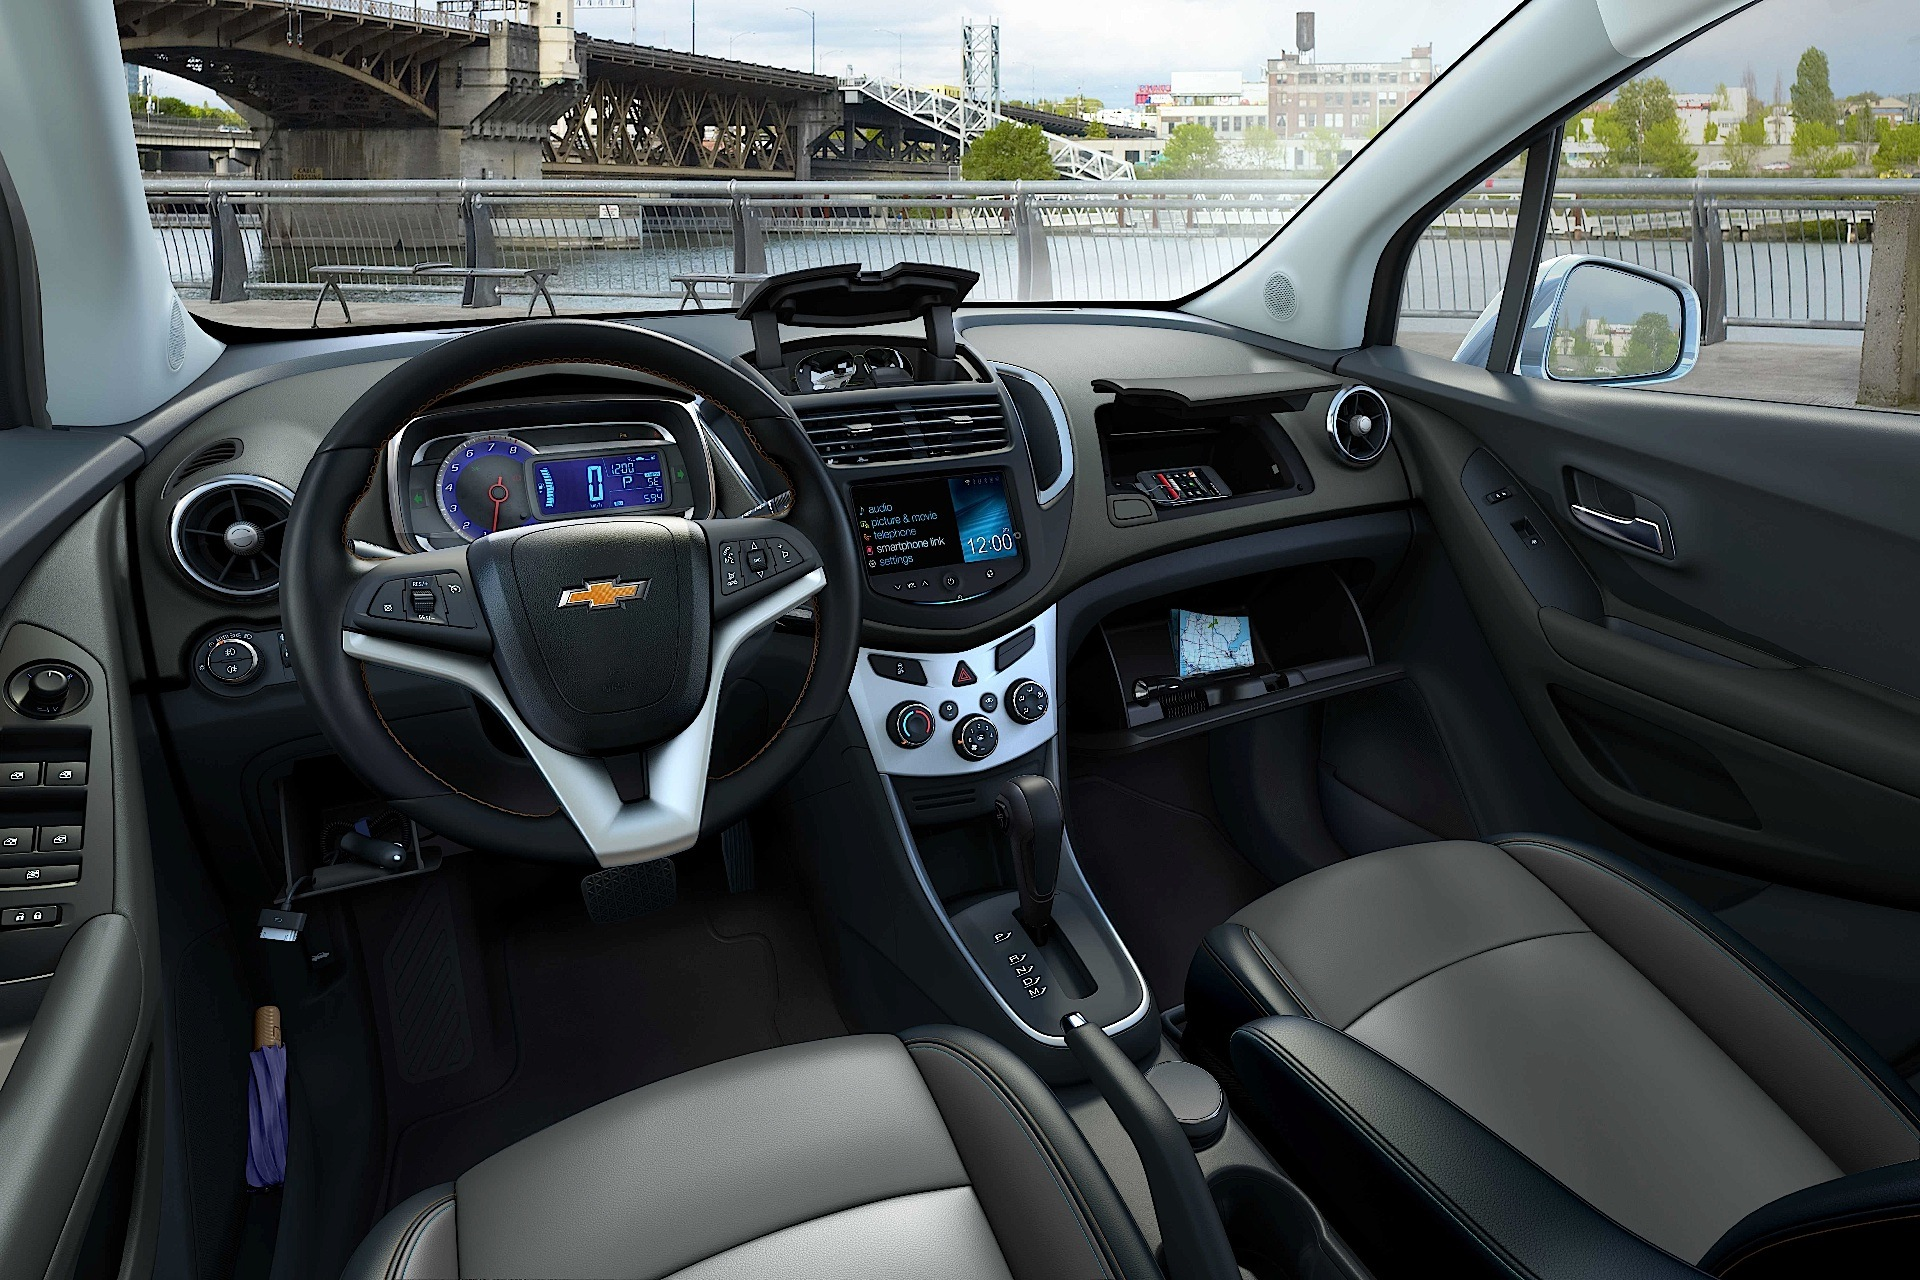 chevrolet tracker pictures #10